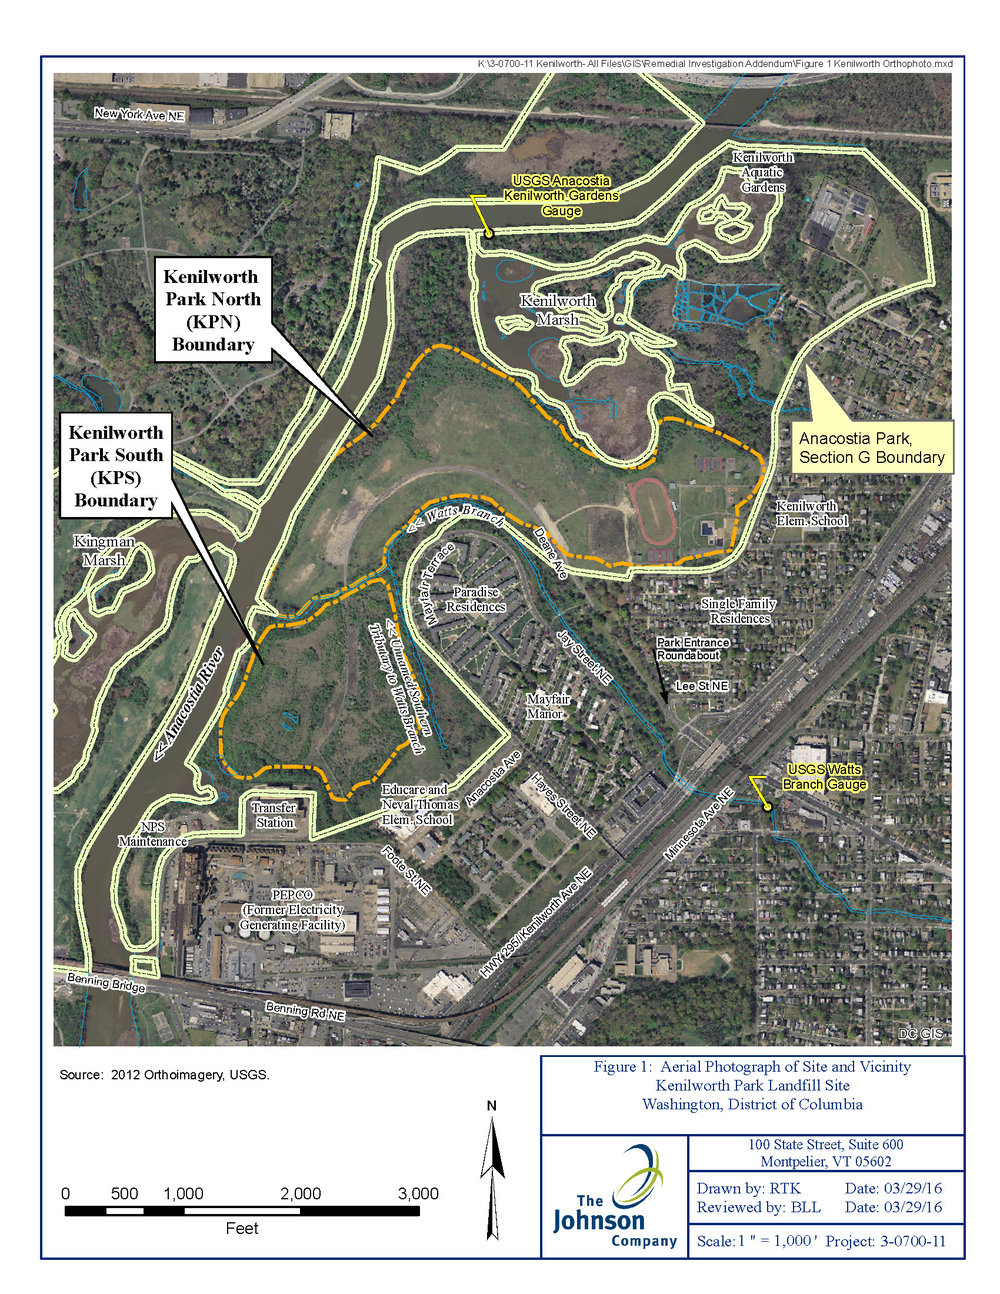 A page from the  Supplemental Groundwater Study of Kenilworth Park  showing the two sections of the park.